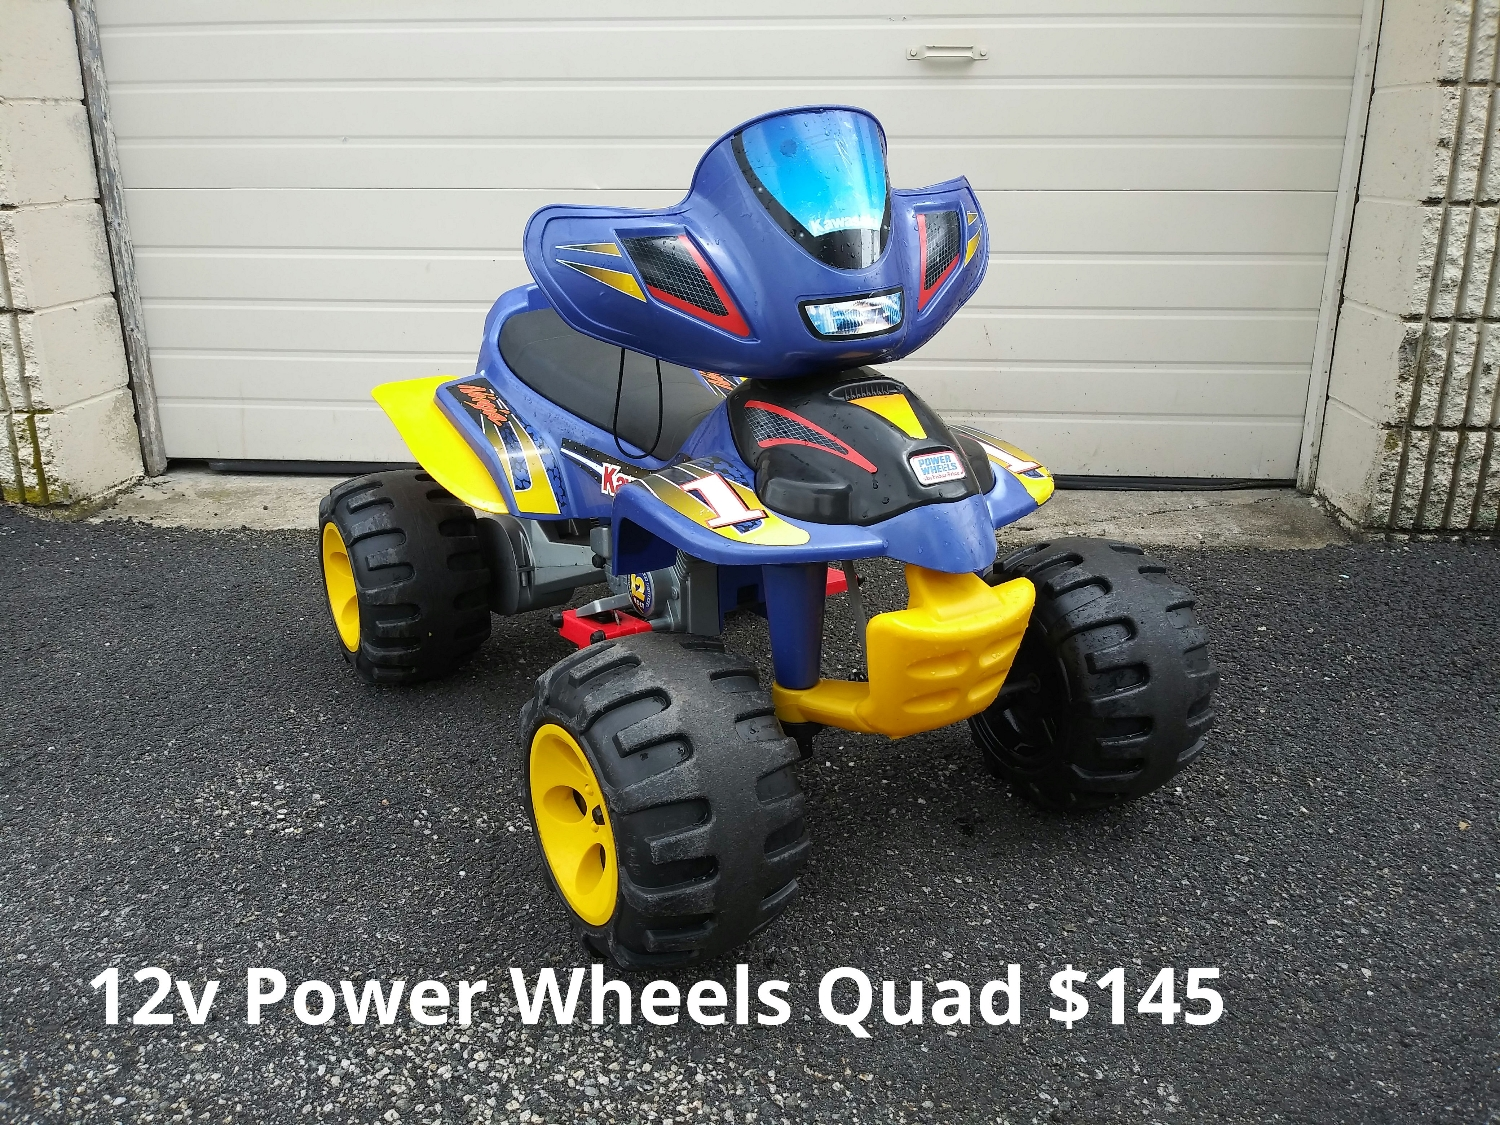 12v Power Wheels Quad